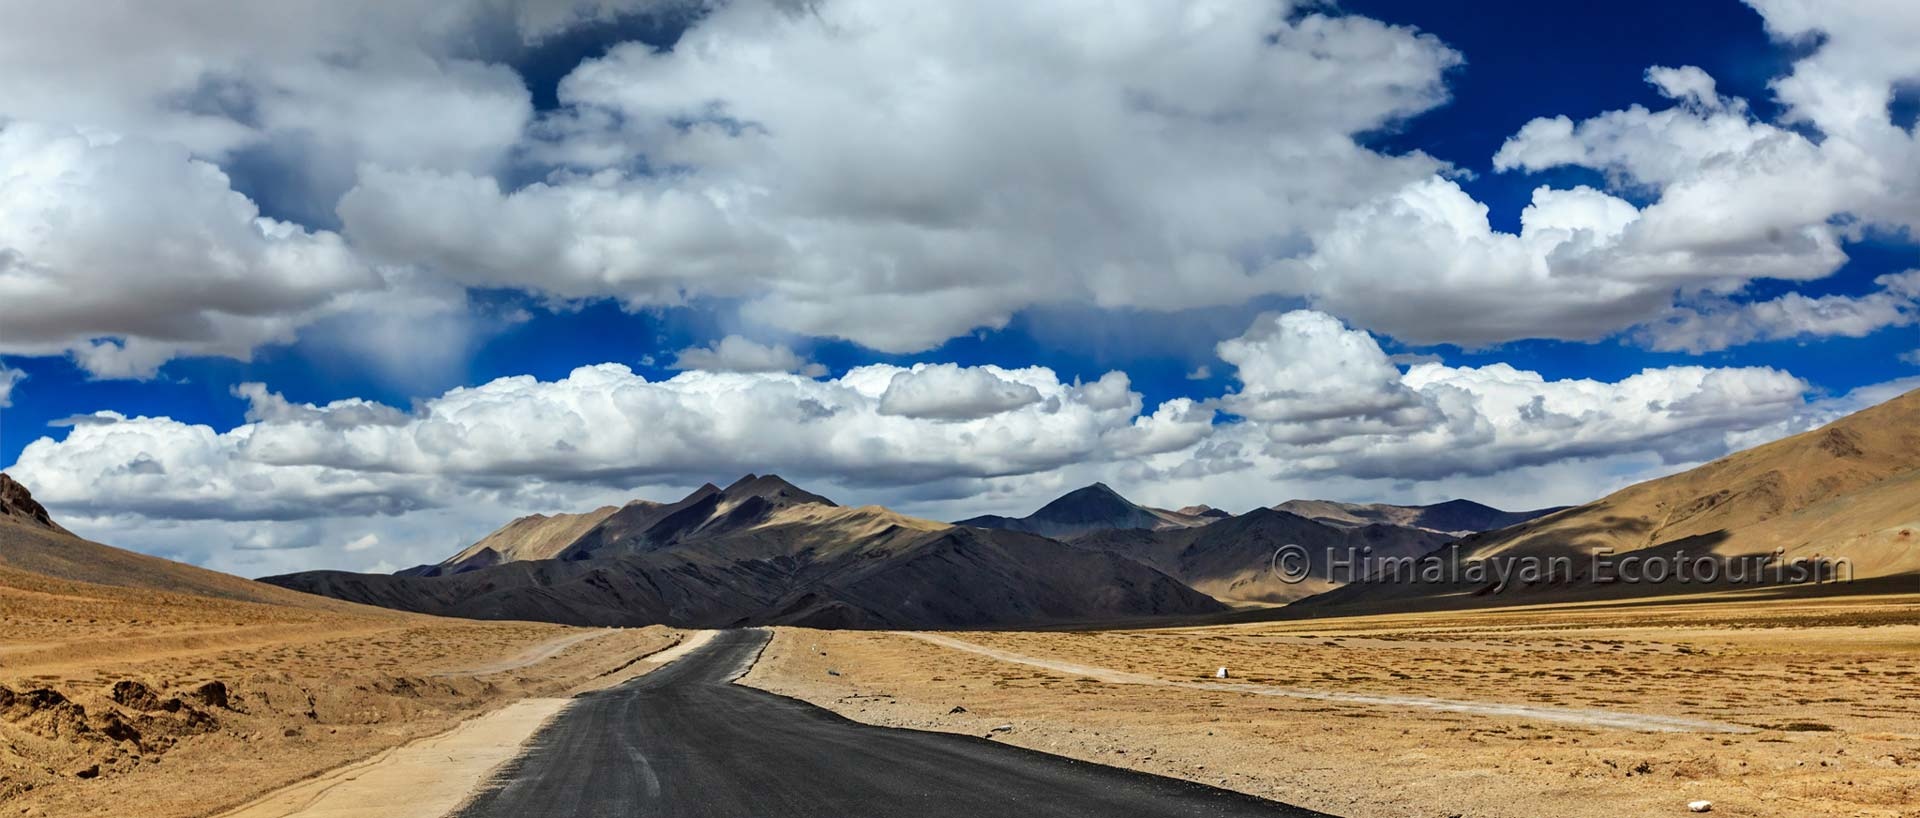 The Manali to Leh road